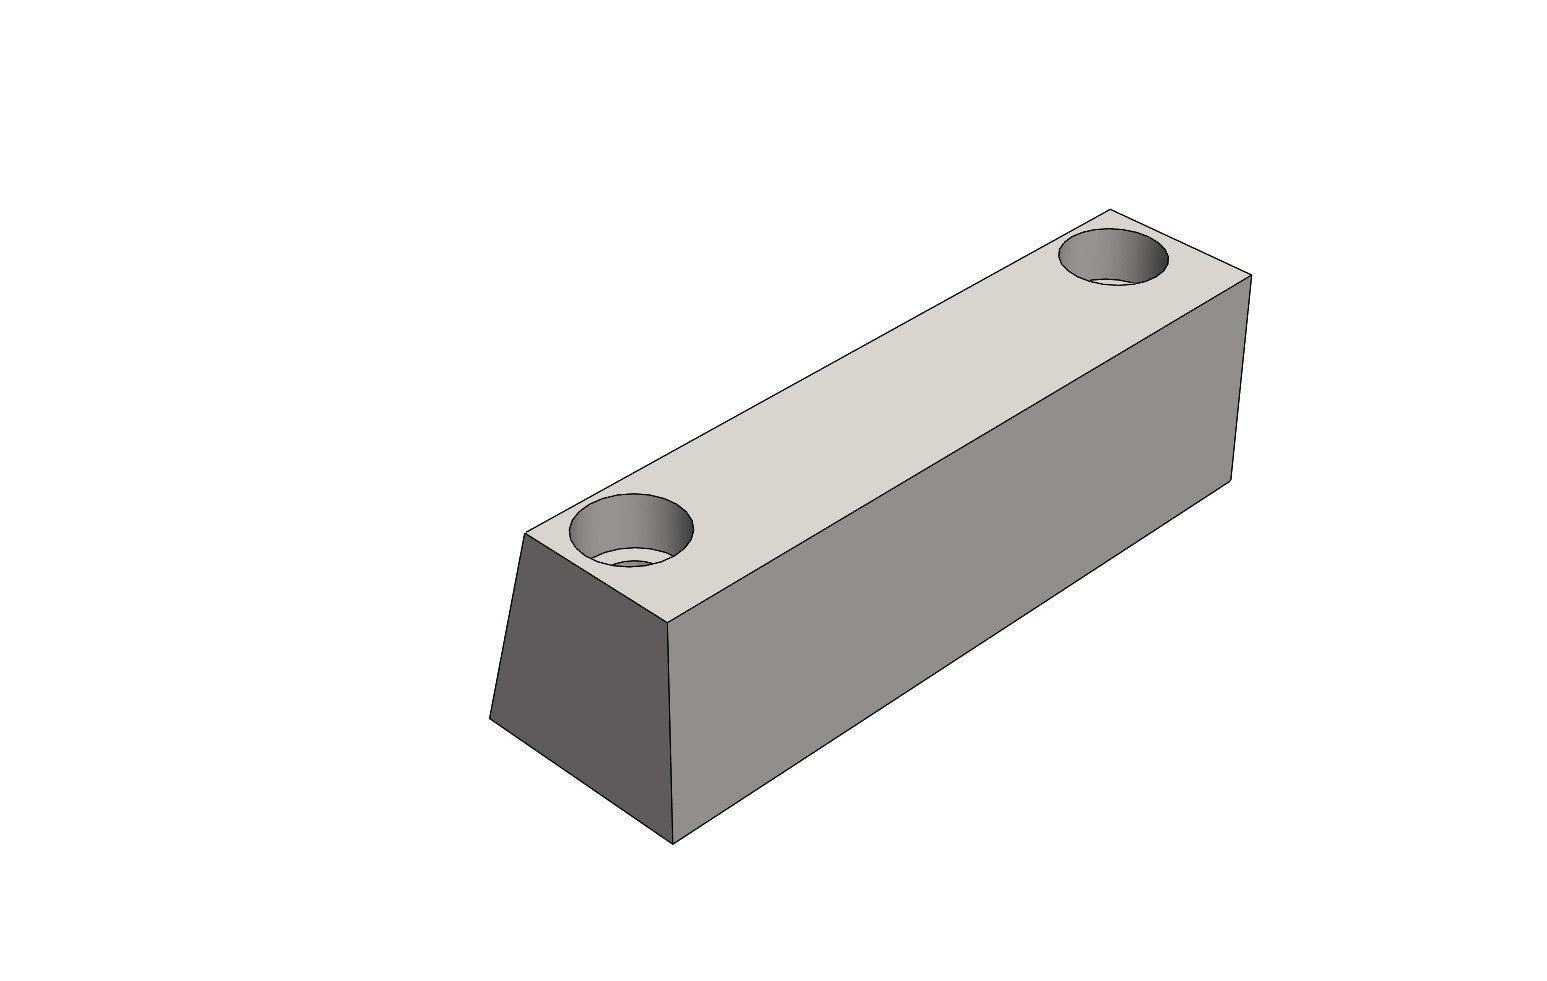 TB13053A MOUNTING BLOCK LOWER - King TB4 Spare Part